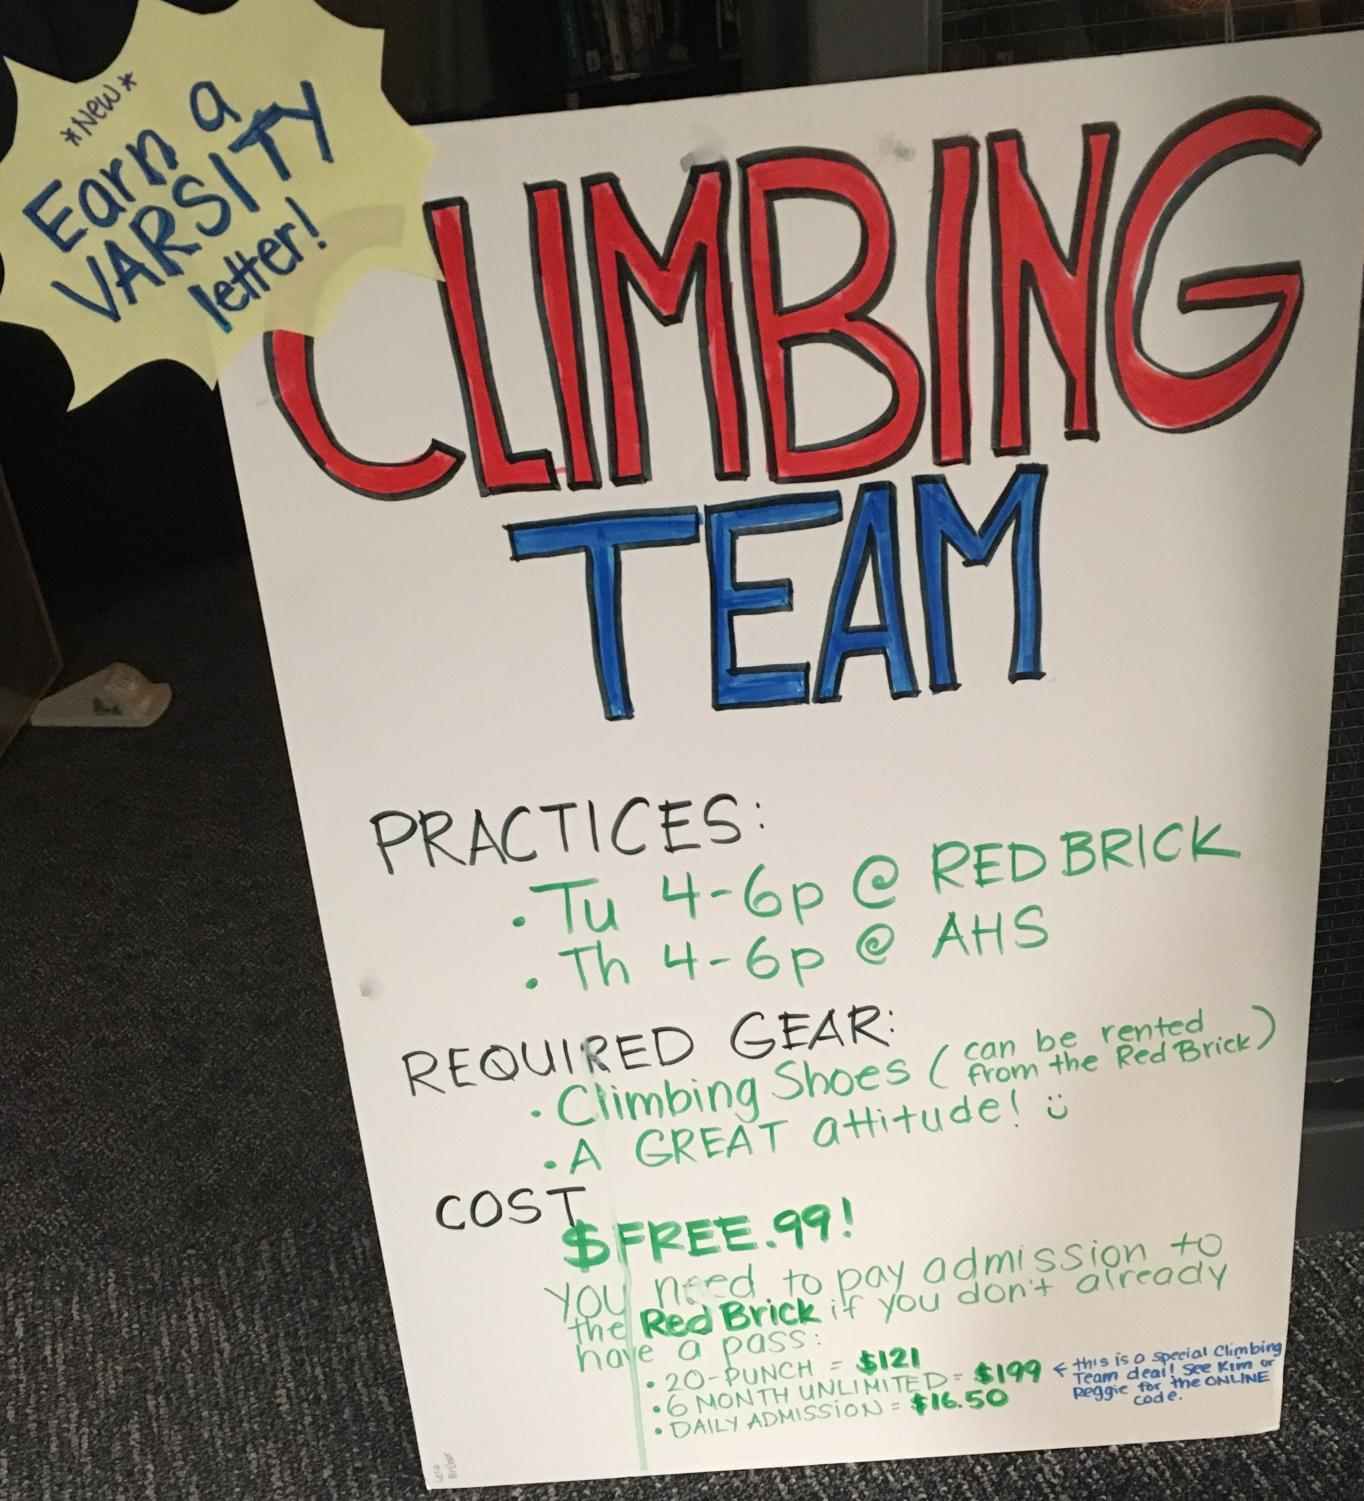 AHS Climbing Team schedule and information